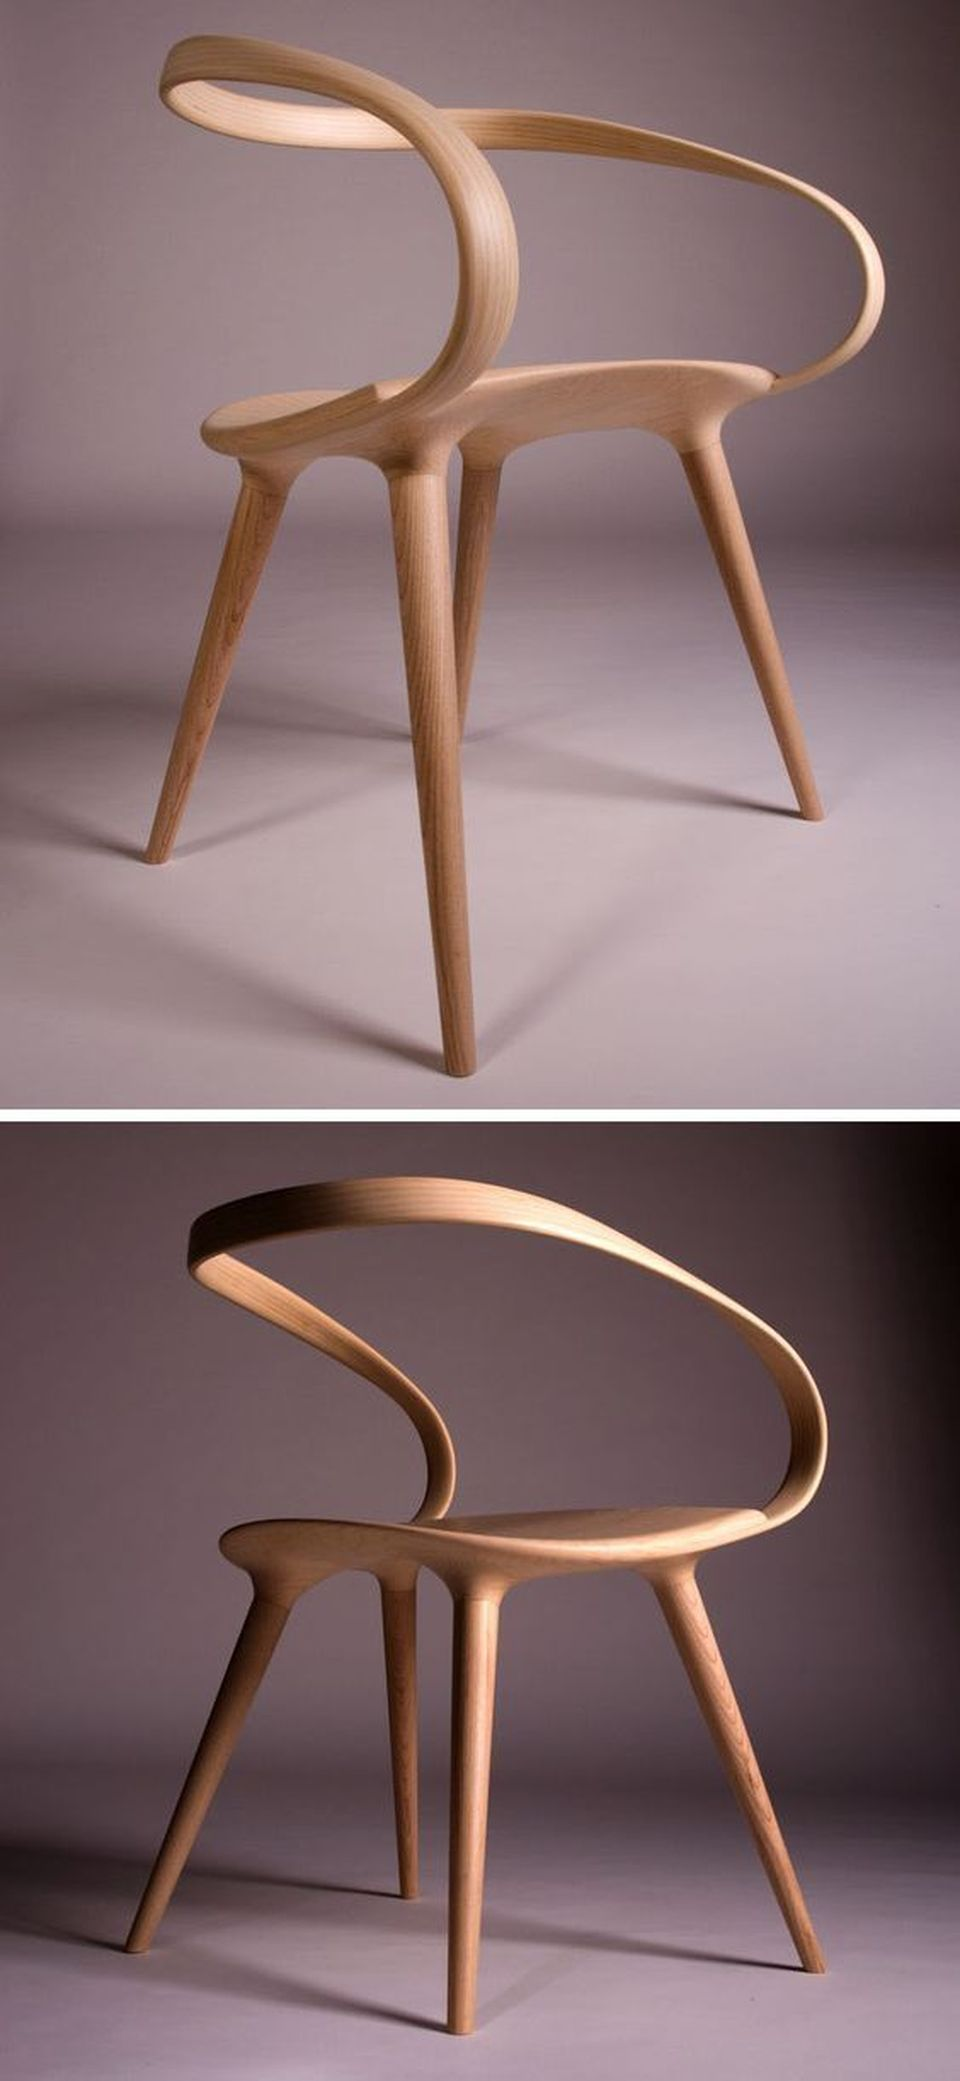 Amazing Modern Futuristic Furniture Design and Concept 2